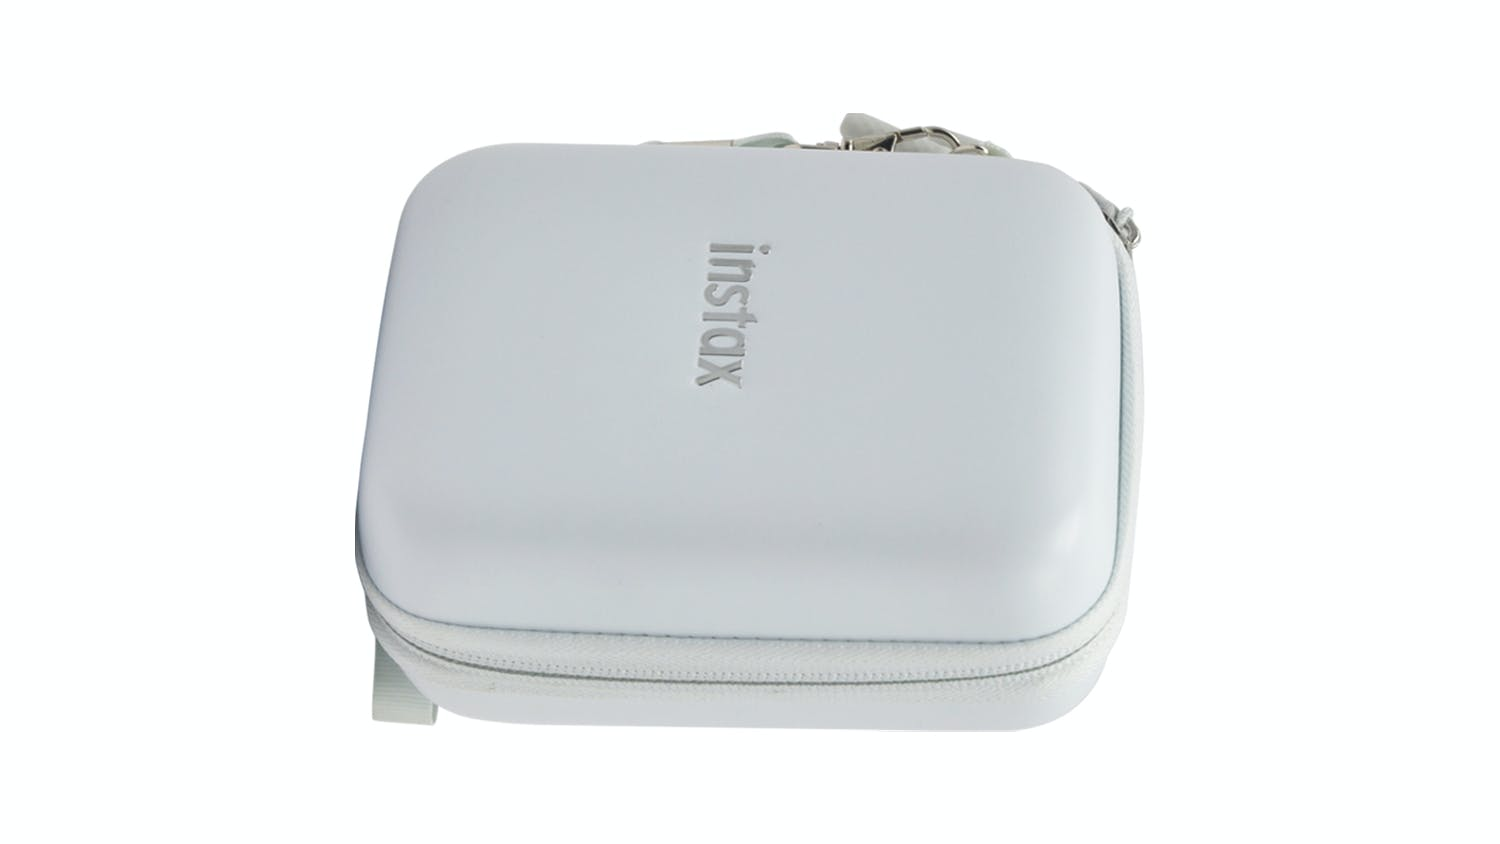 Instax mini Link - Ash White Case